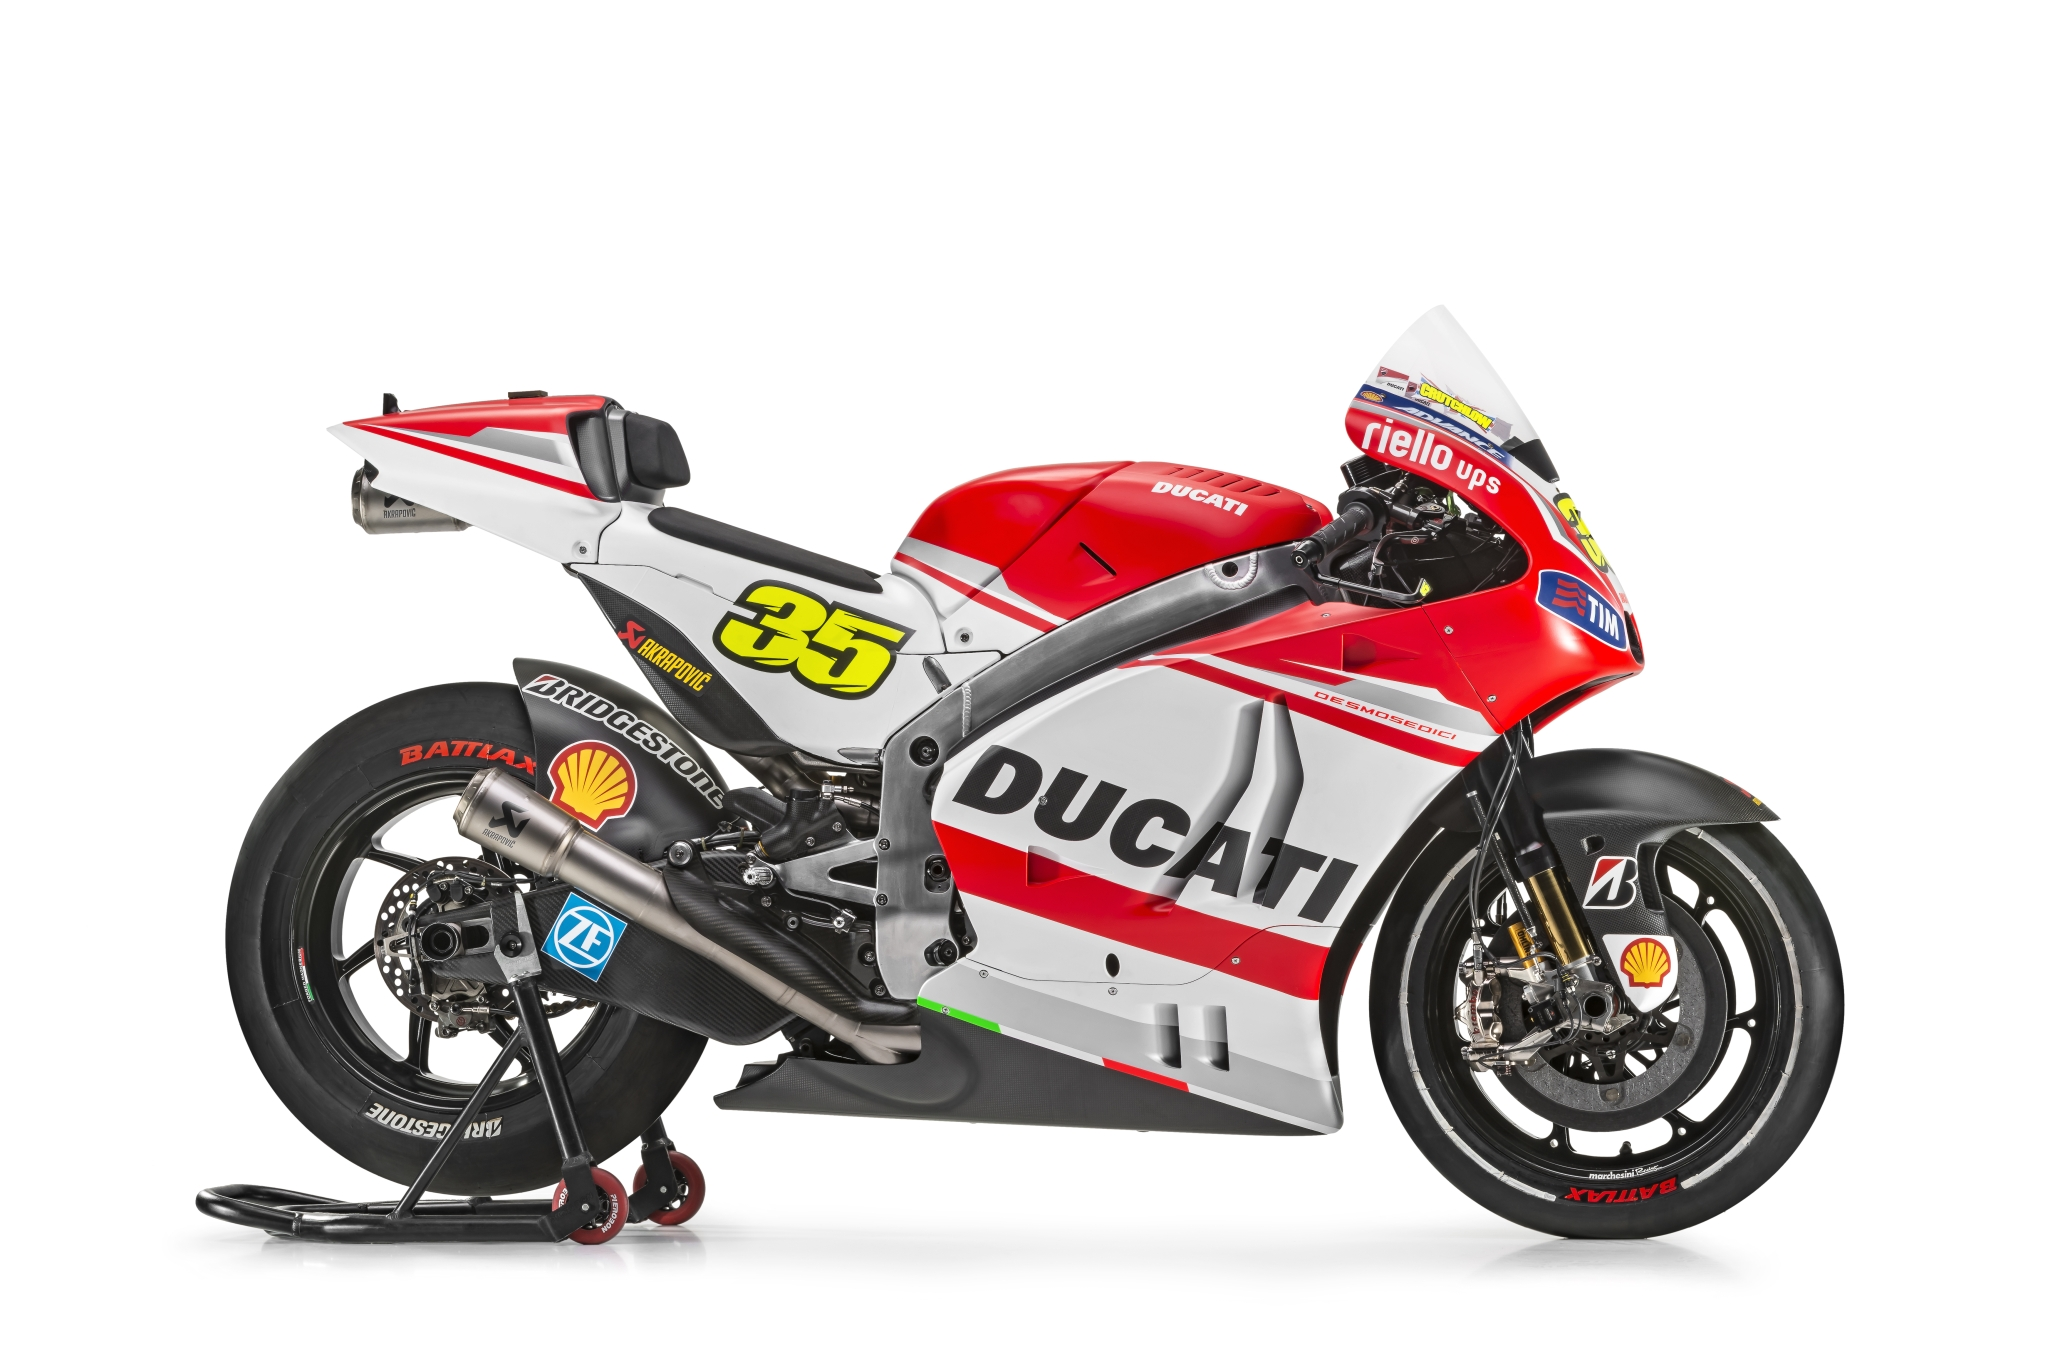 2014 Ducati MotoGP Bikes in Sizzling Hot Pictorial ...